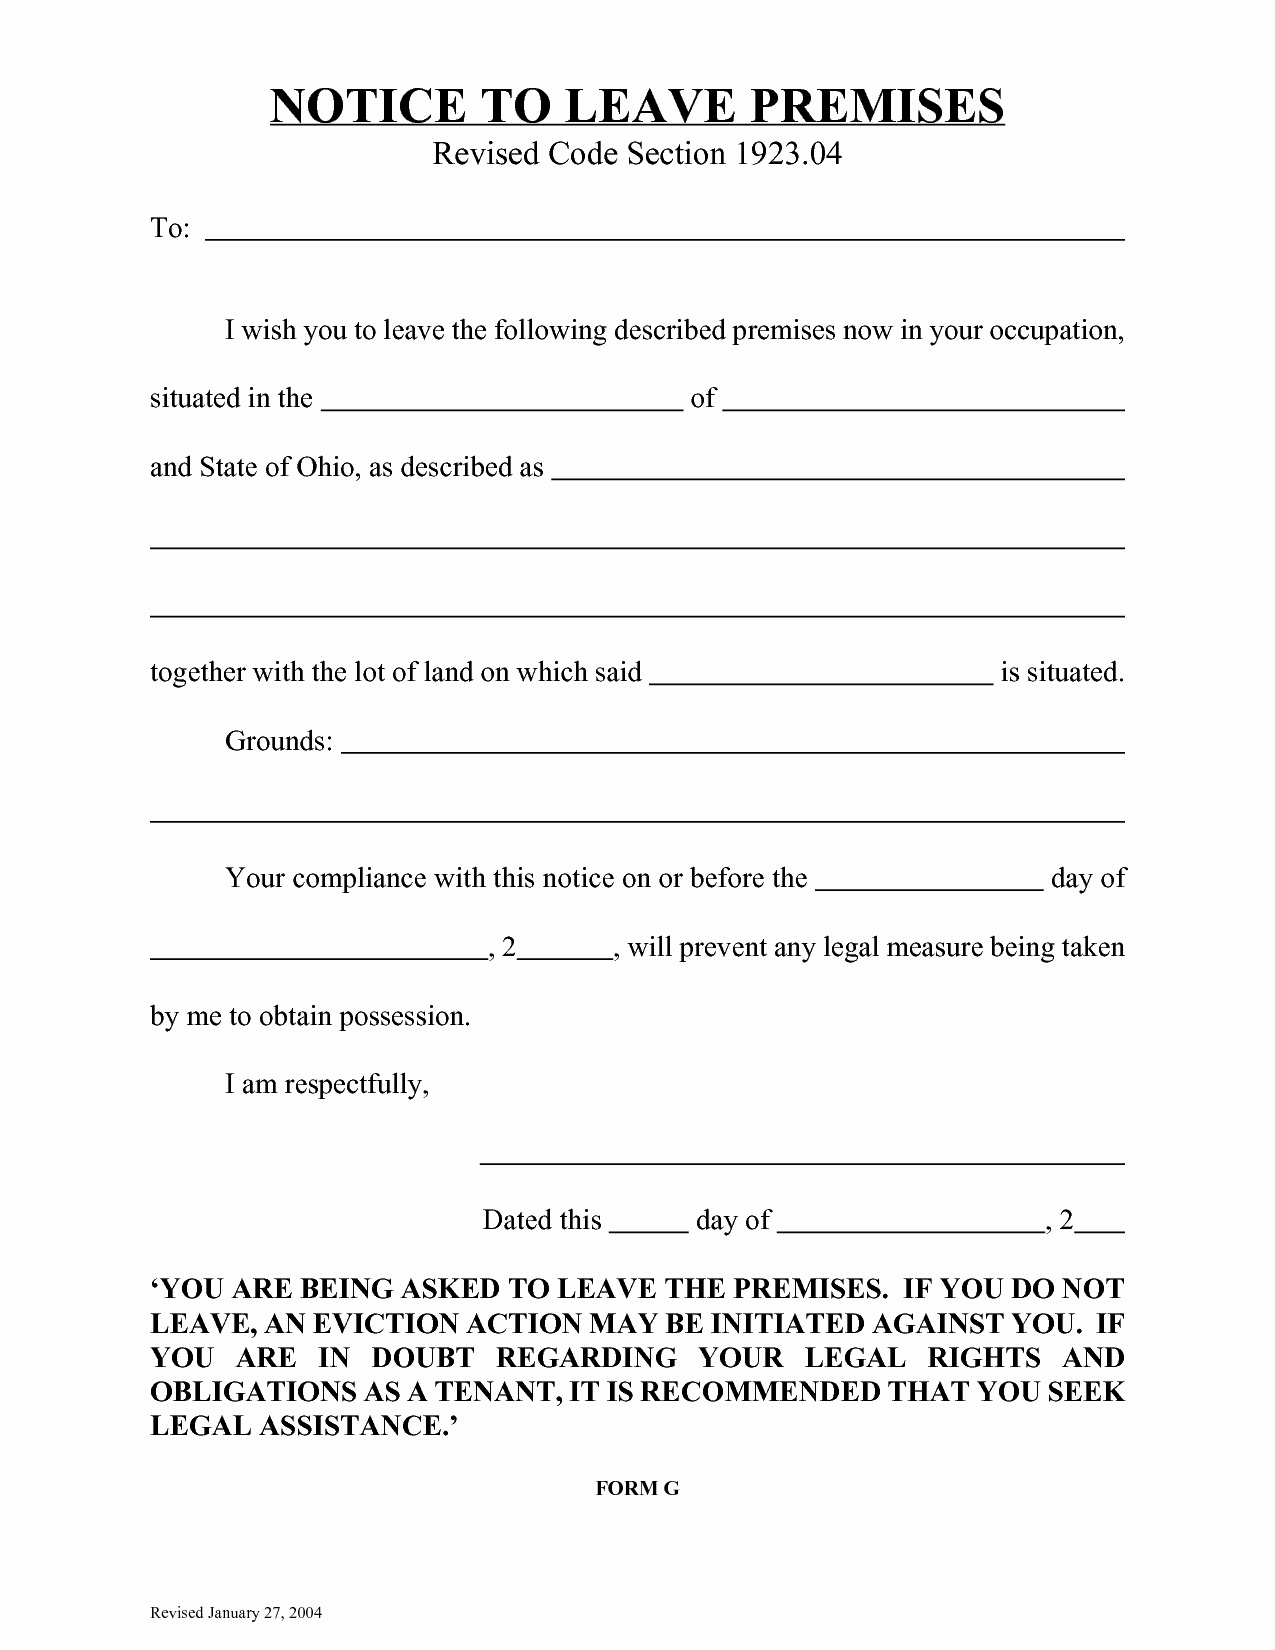 Tenant Eviction Notice Template Luxury 10 Best Eviction Notice Florida form Blank